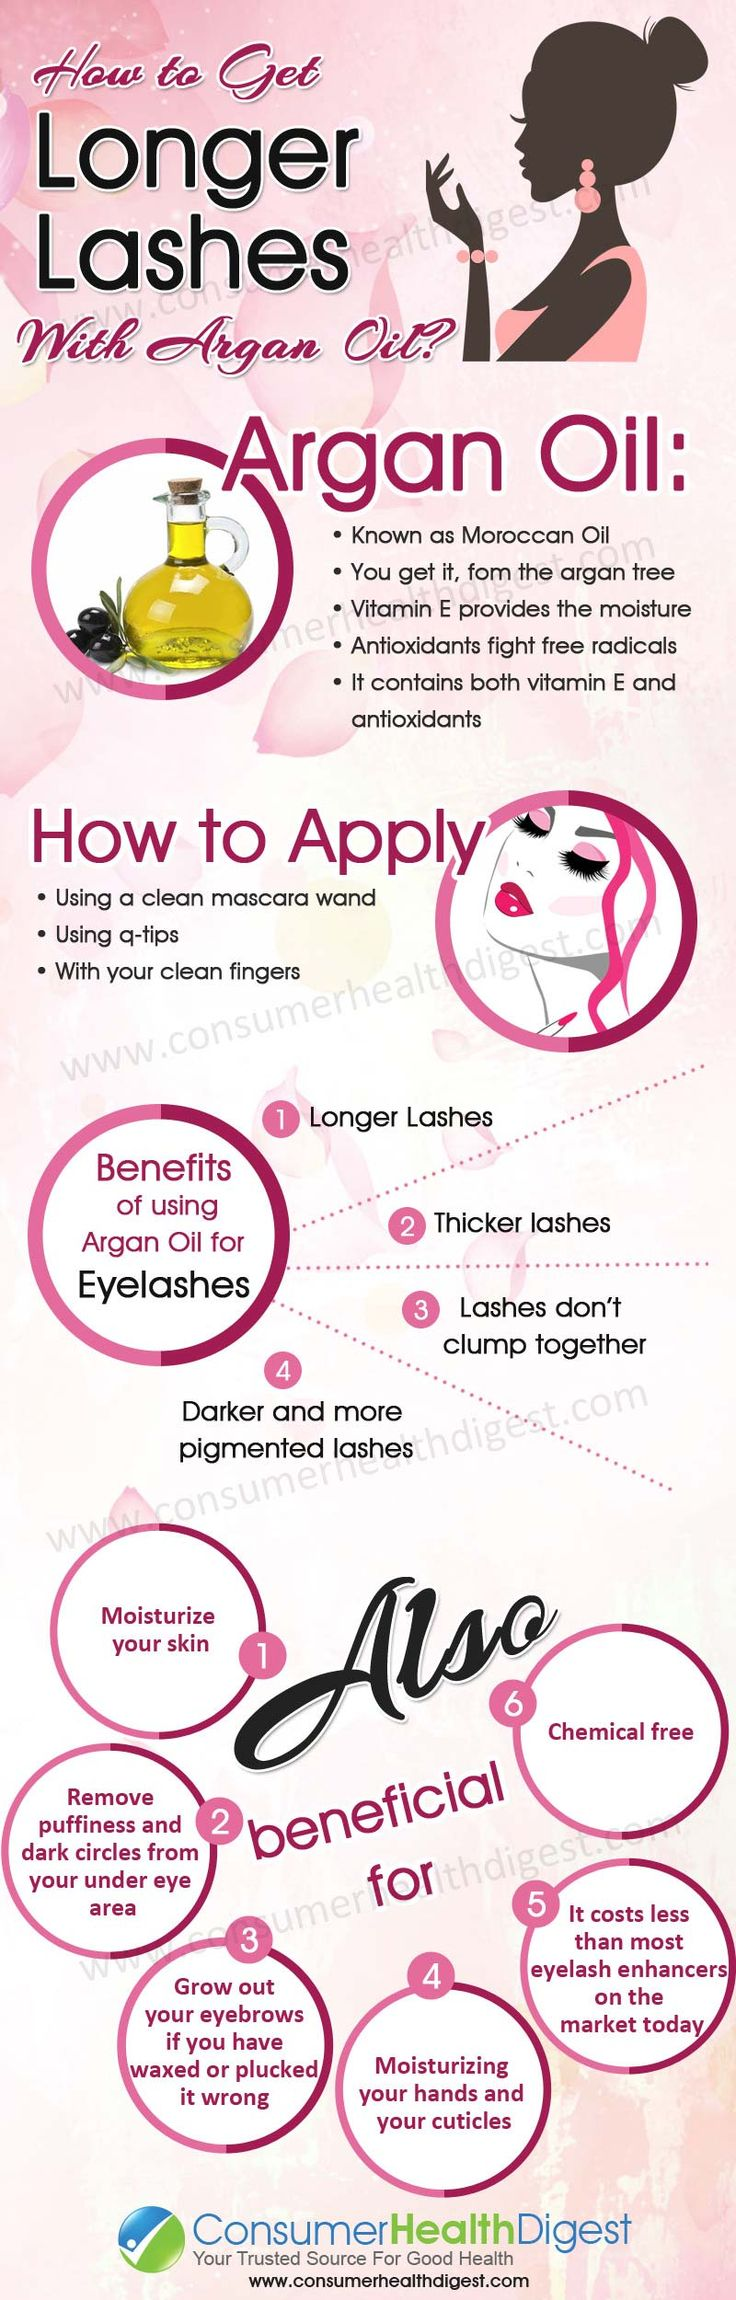 How to Get Longer Lashes With Argan Oil?